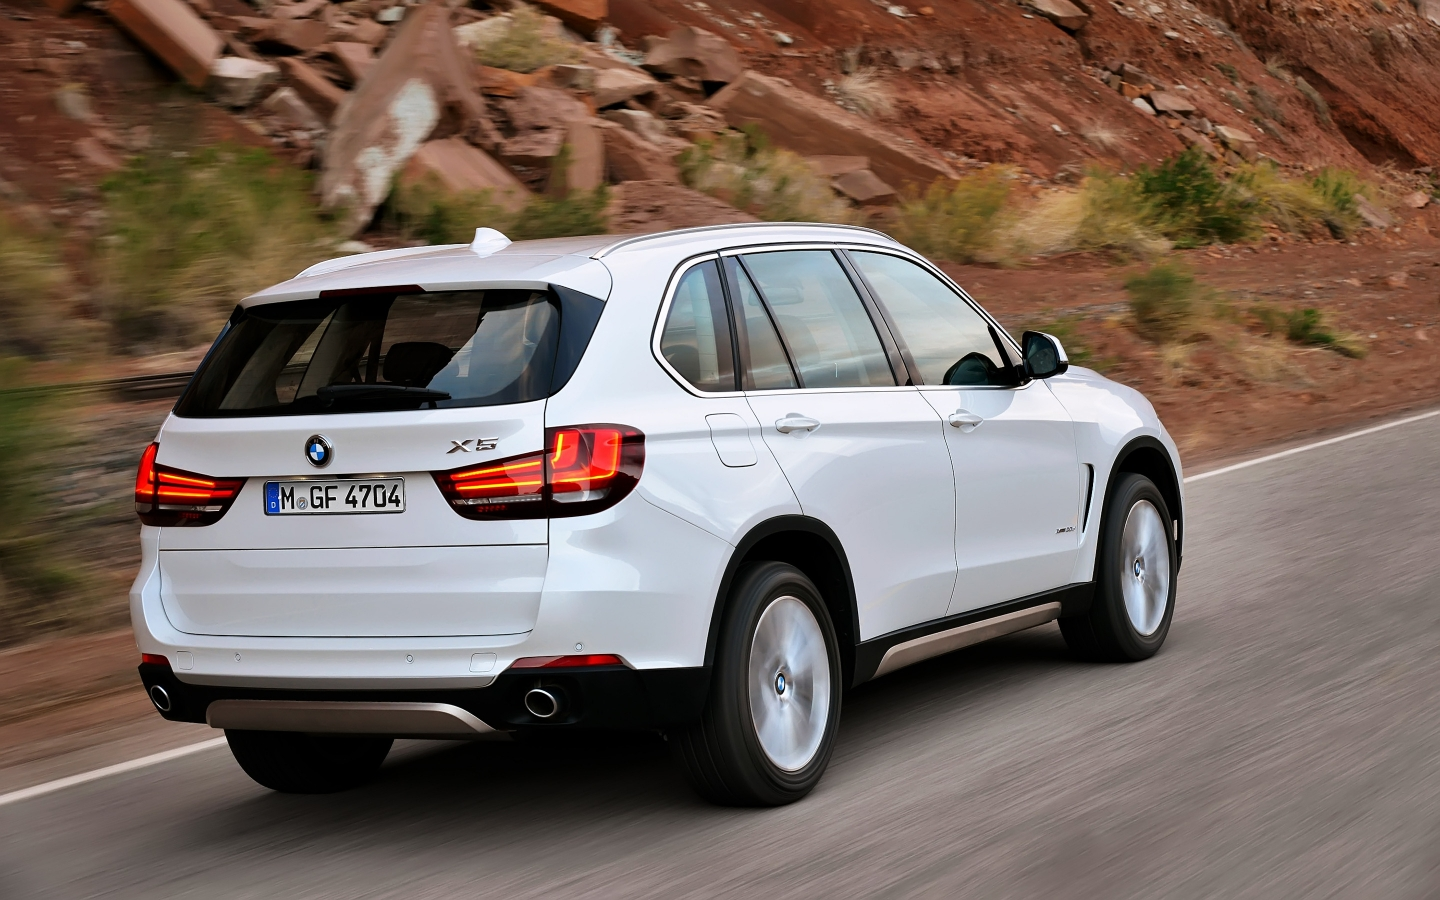 2014 BMW X5 Rear for 1440 x 900 widescreen resolution